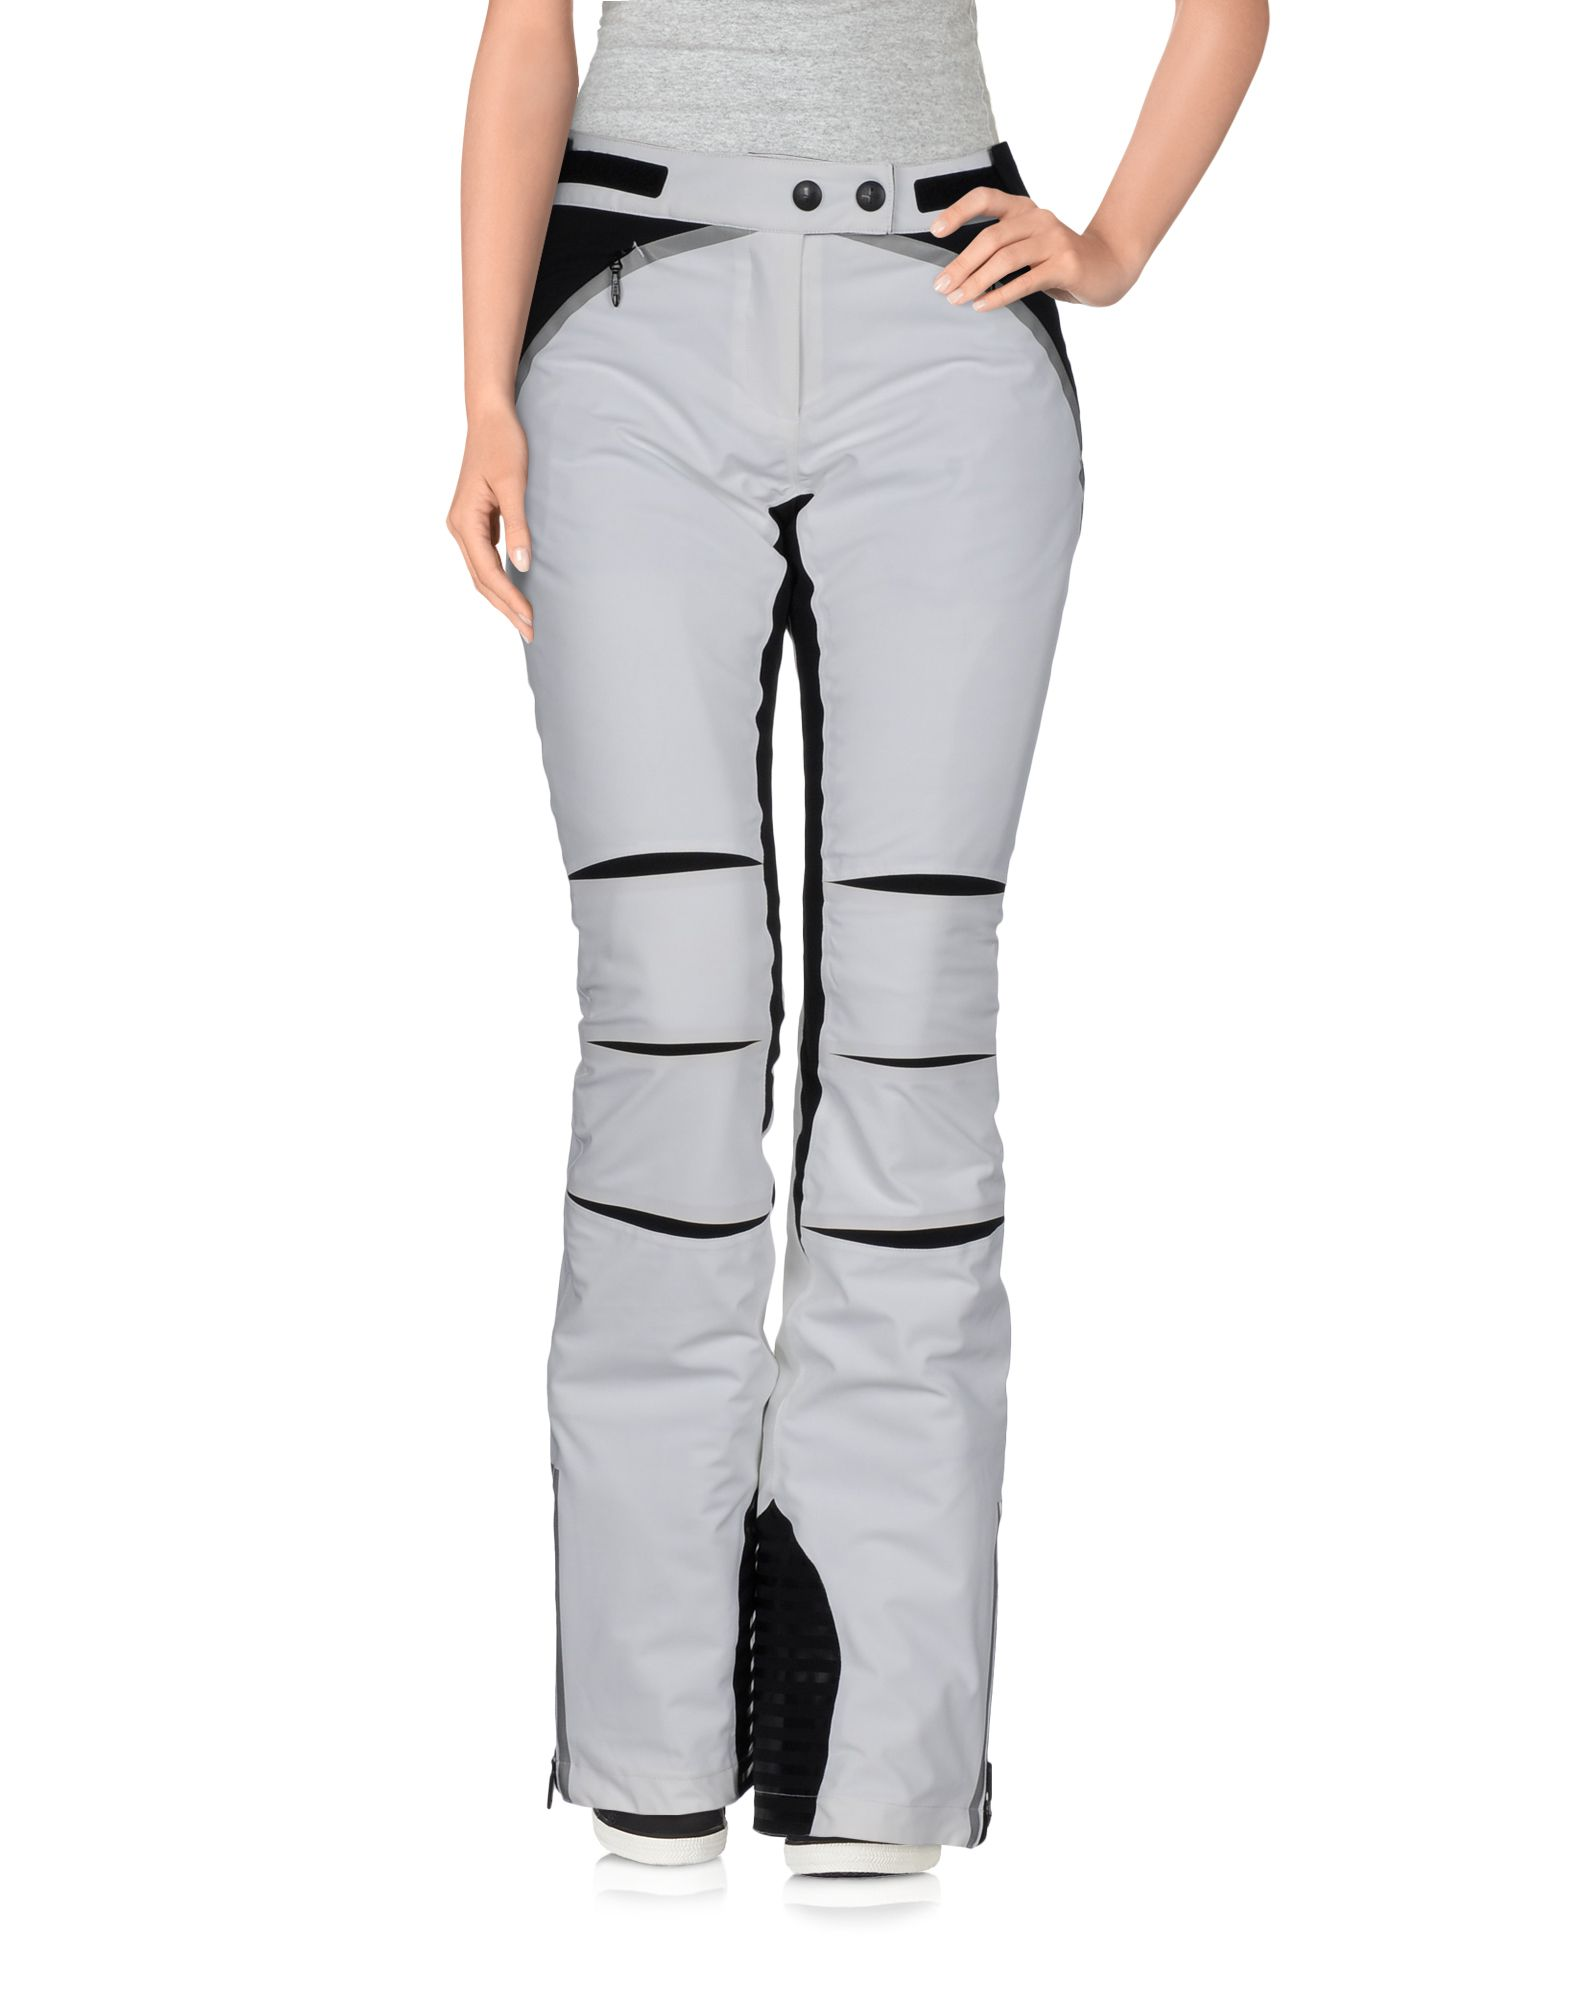 LACROIX Straight Pant in White